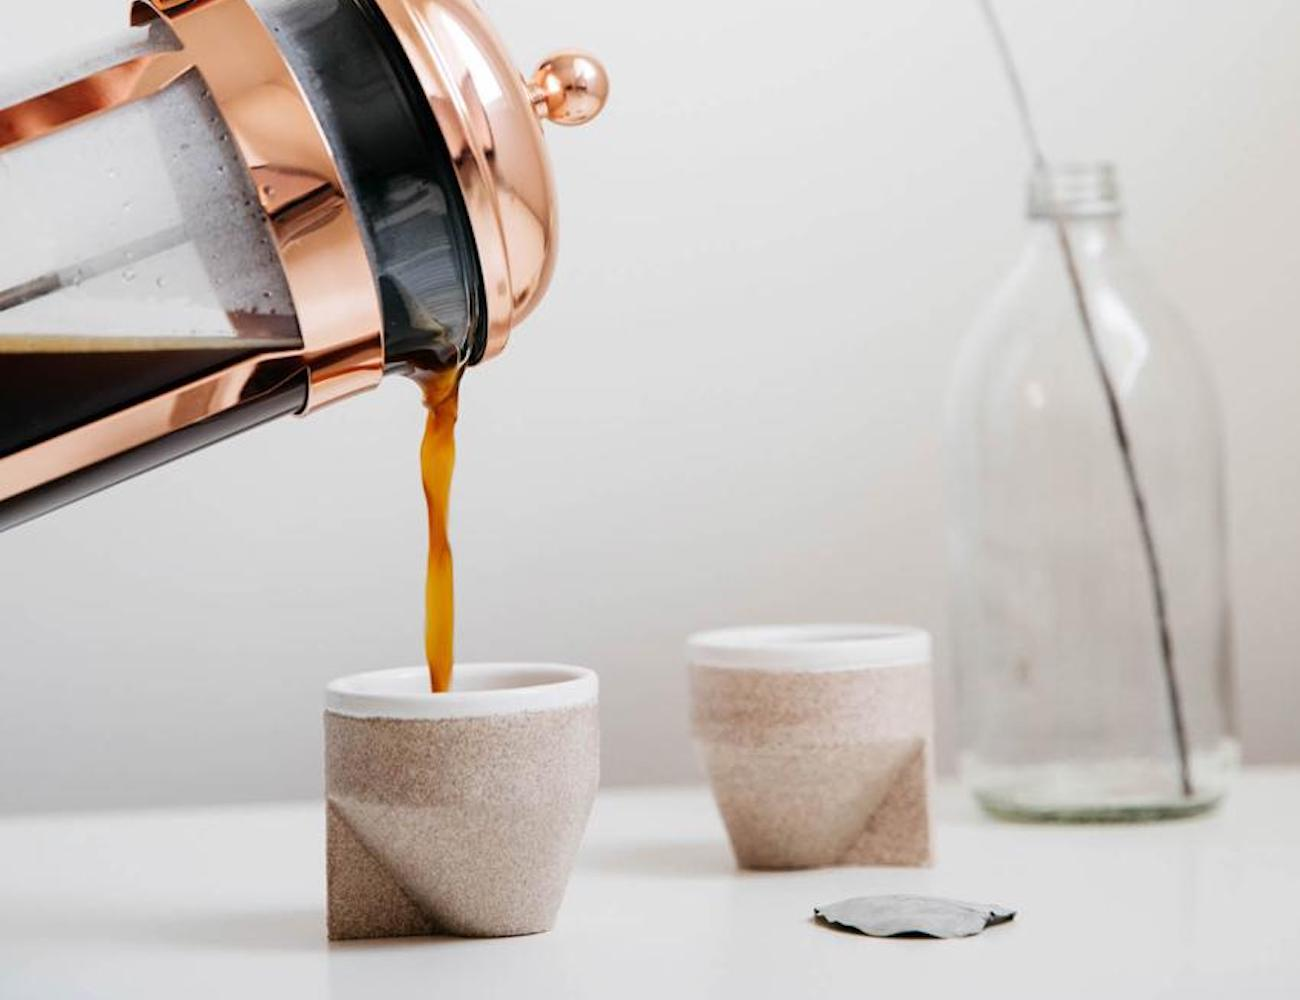 The Foundry RAMEL C01 Ceramic and Sand Infused Cups